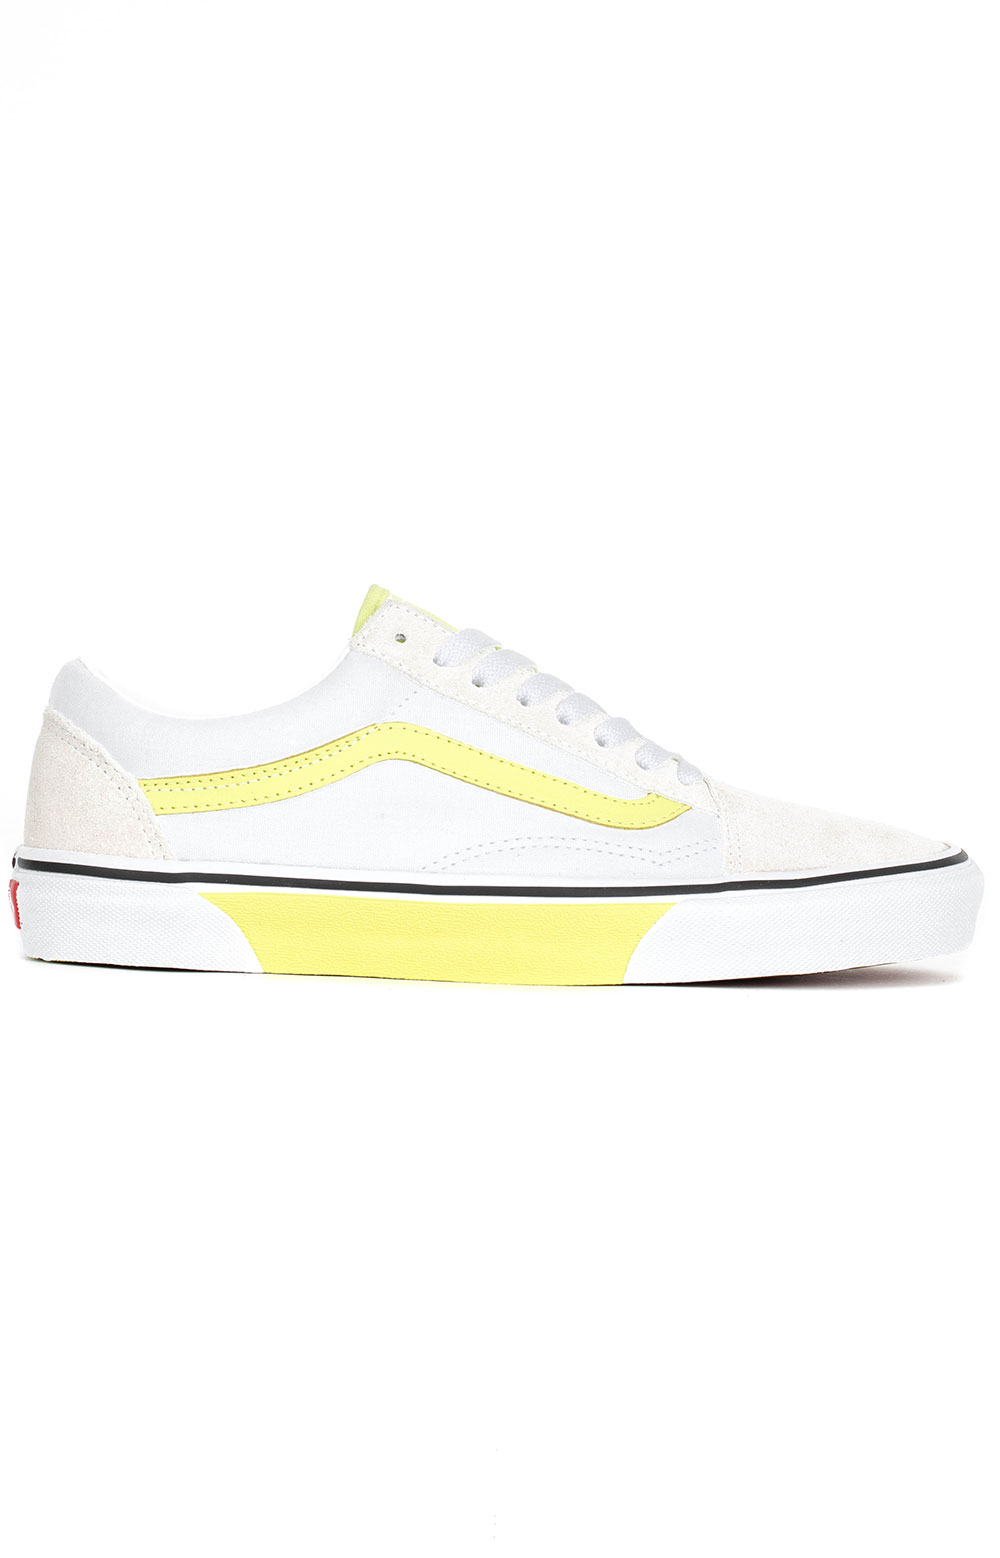 (8G1VR3) Color Block Old Skool Shoe - Yellow